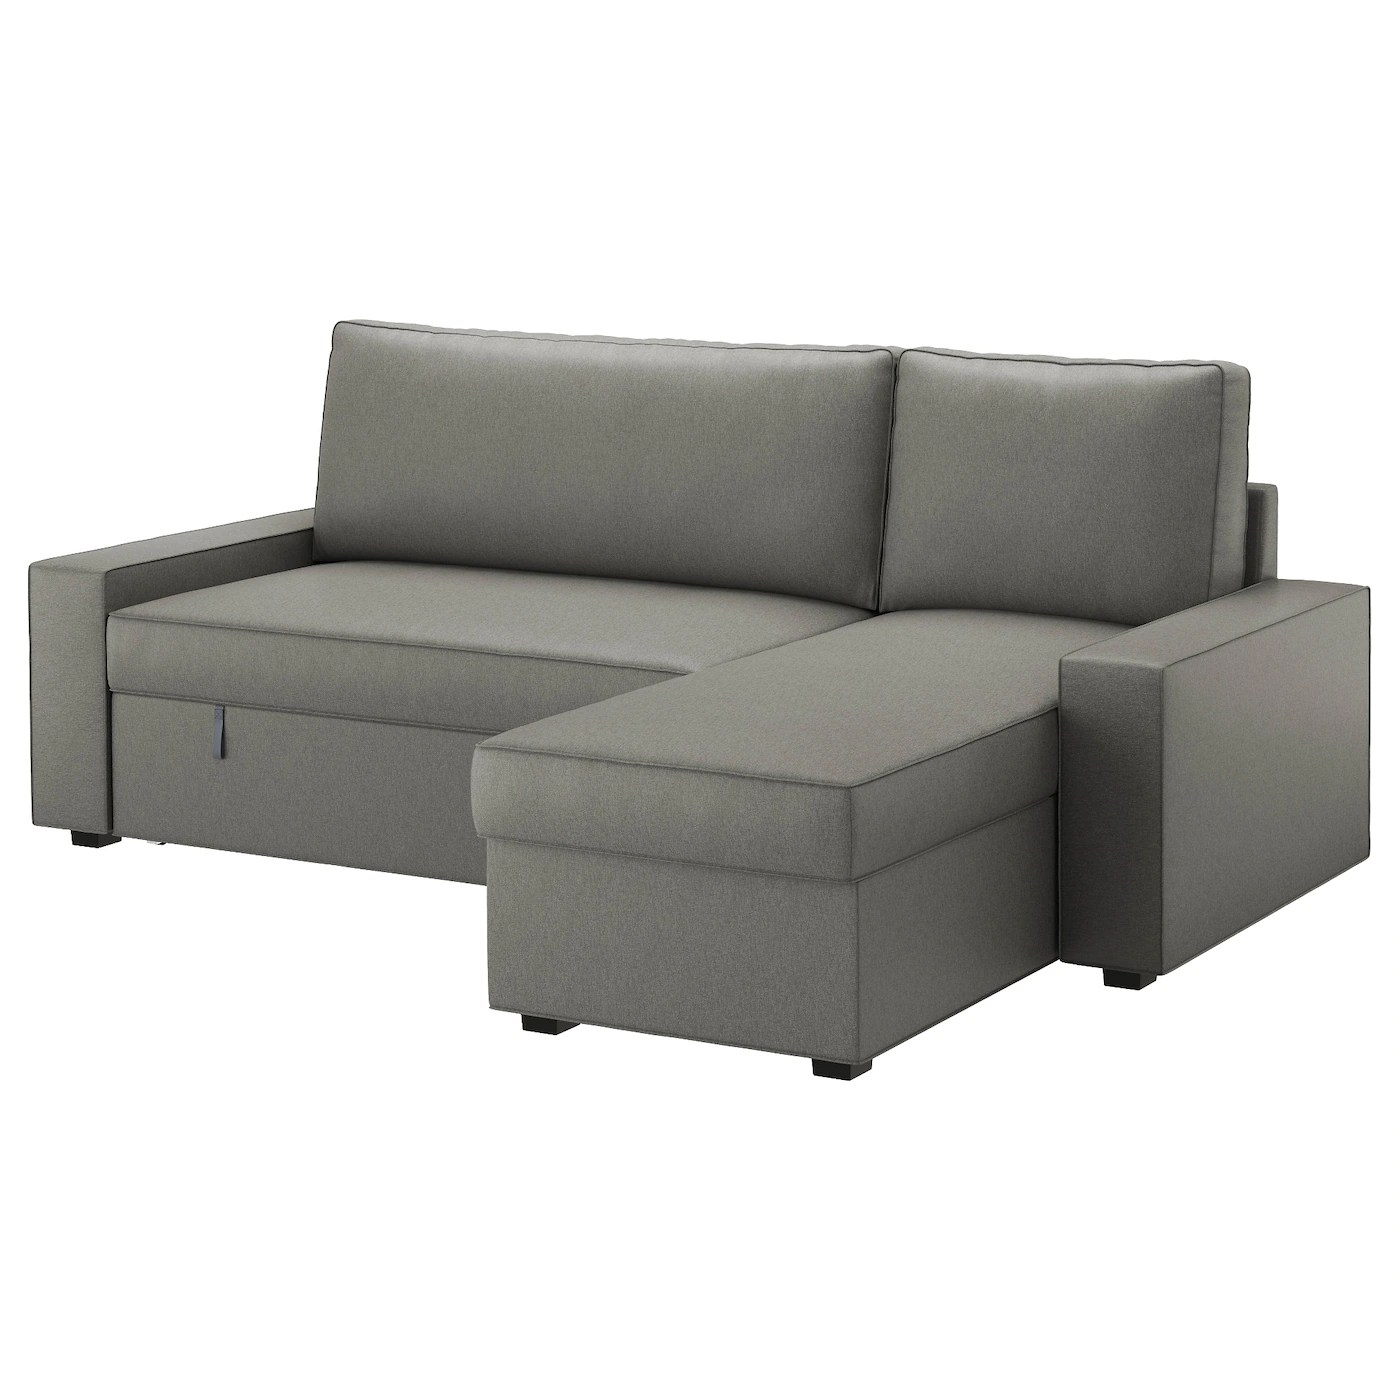 sofa chair bed ikea desk for back pain beds and futons